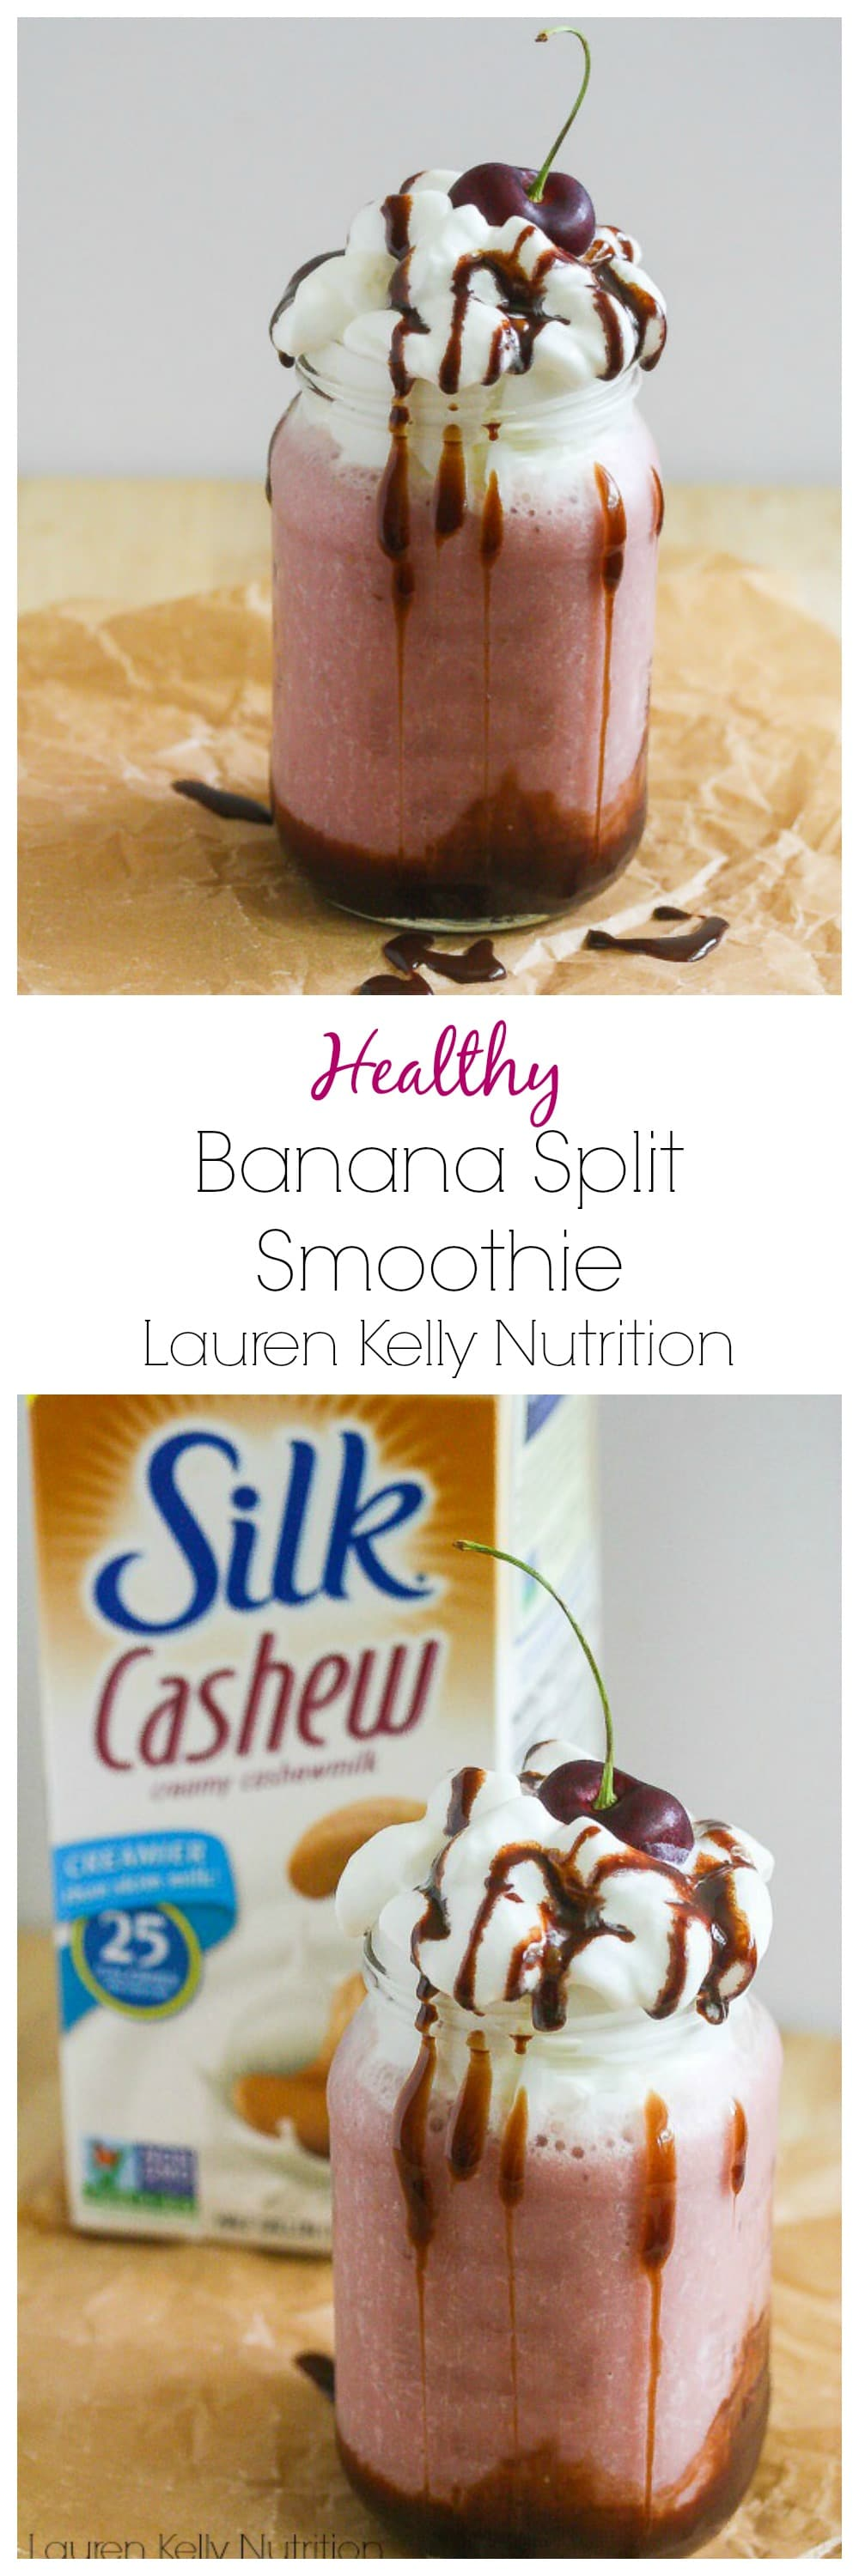 This Banana Split Smoothie is vegan, dairy-free and gluten free! Enjoy this banana split guilt-free! @LoveMySilk #SilkCashew #VanillaCashew